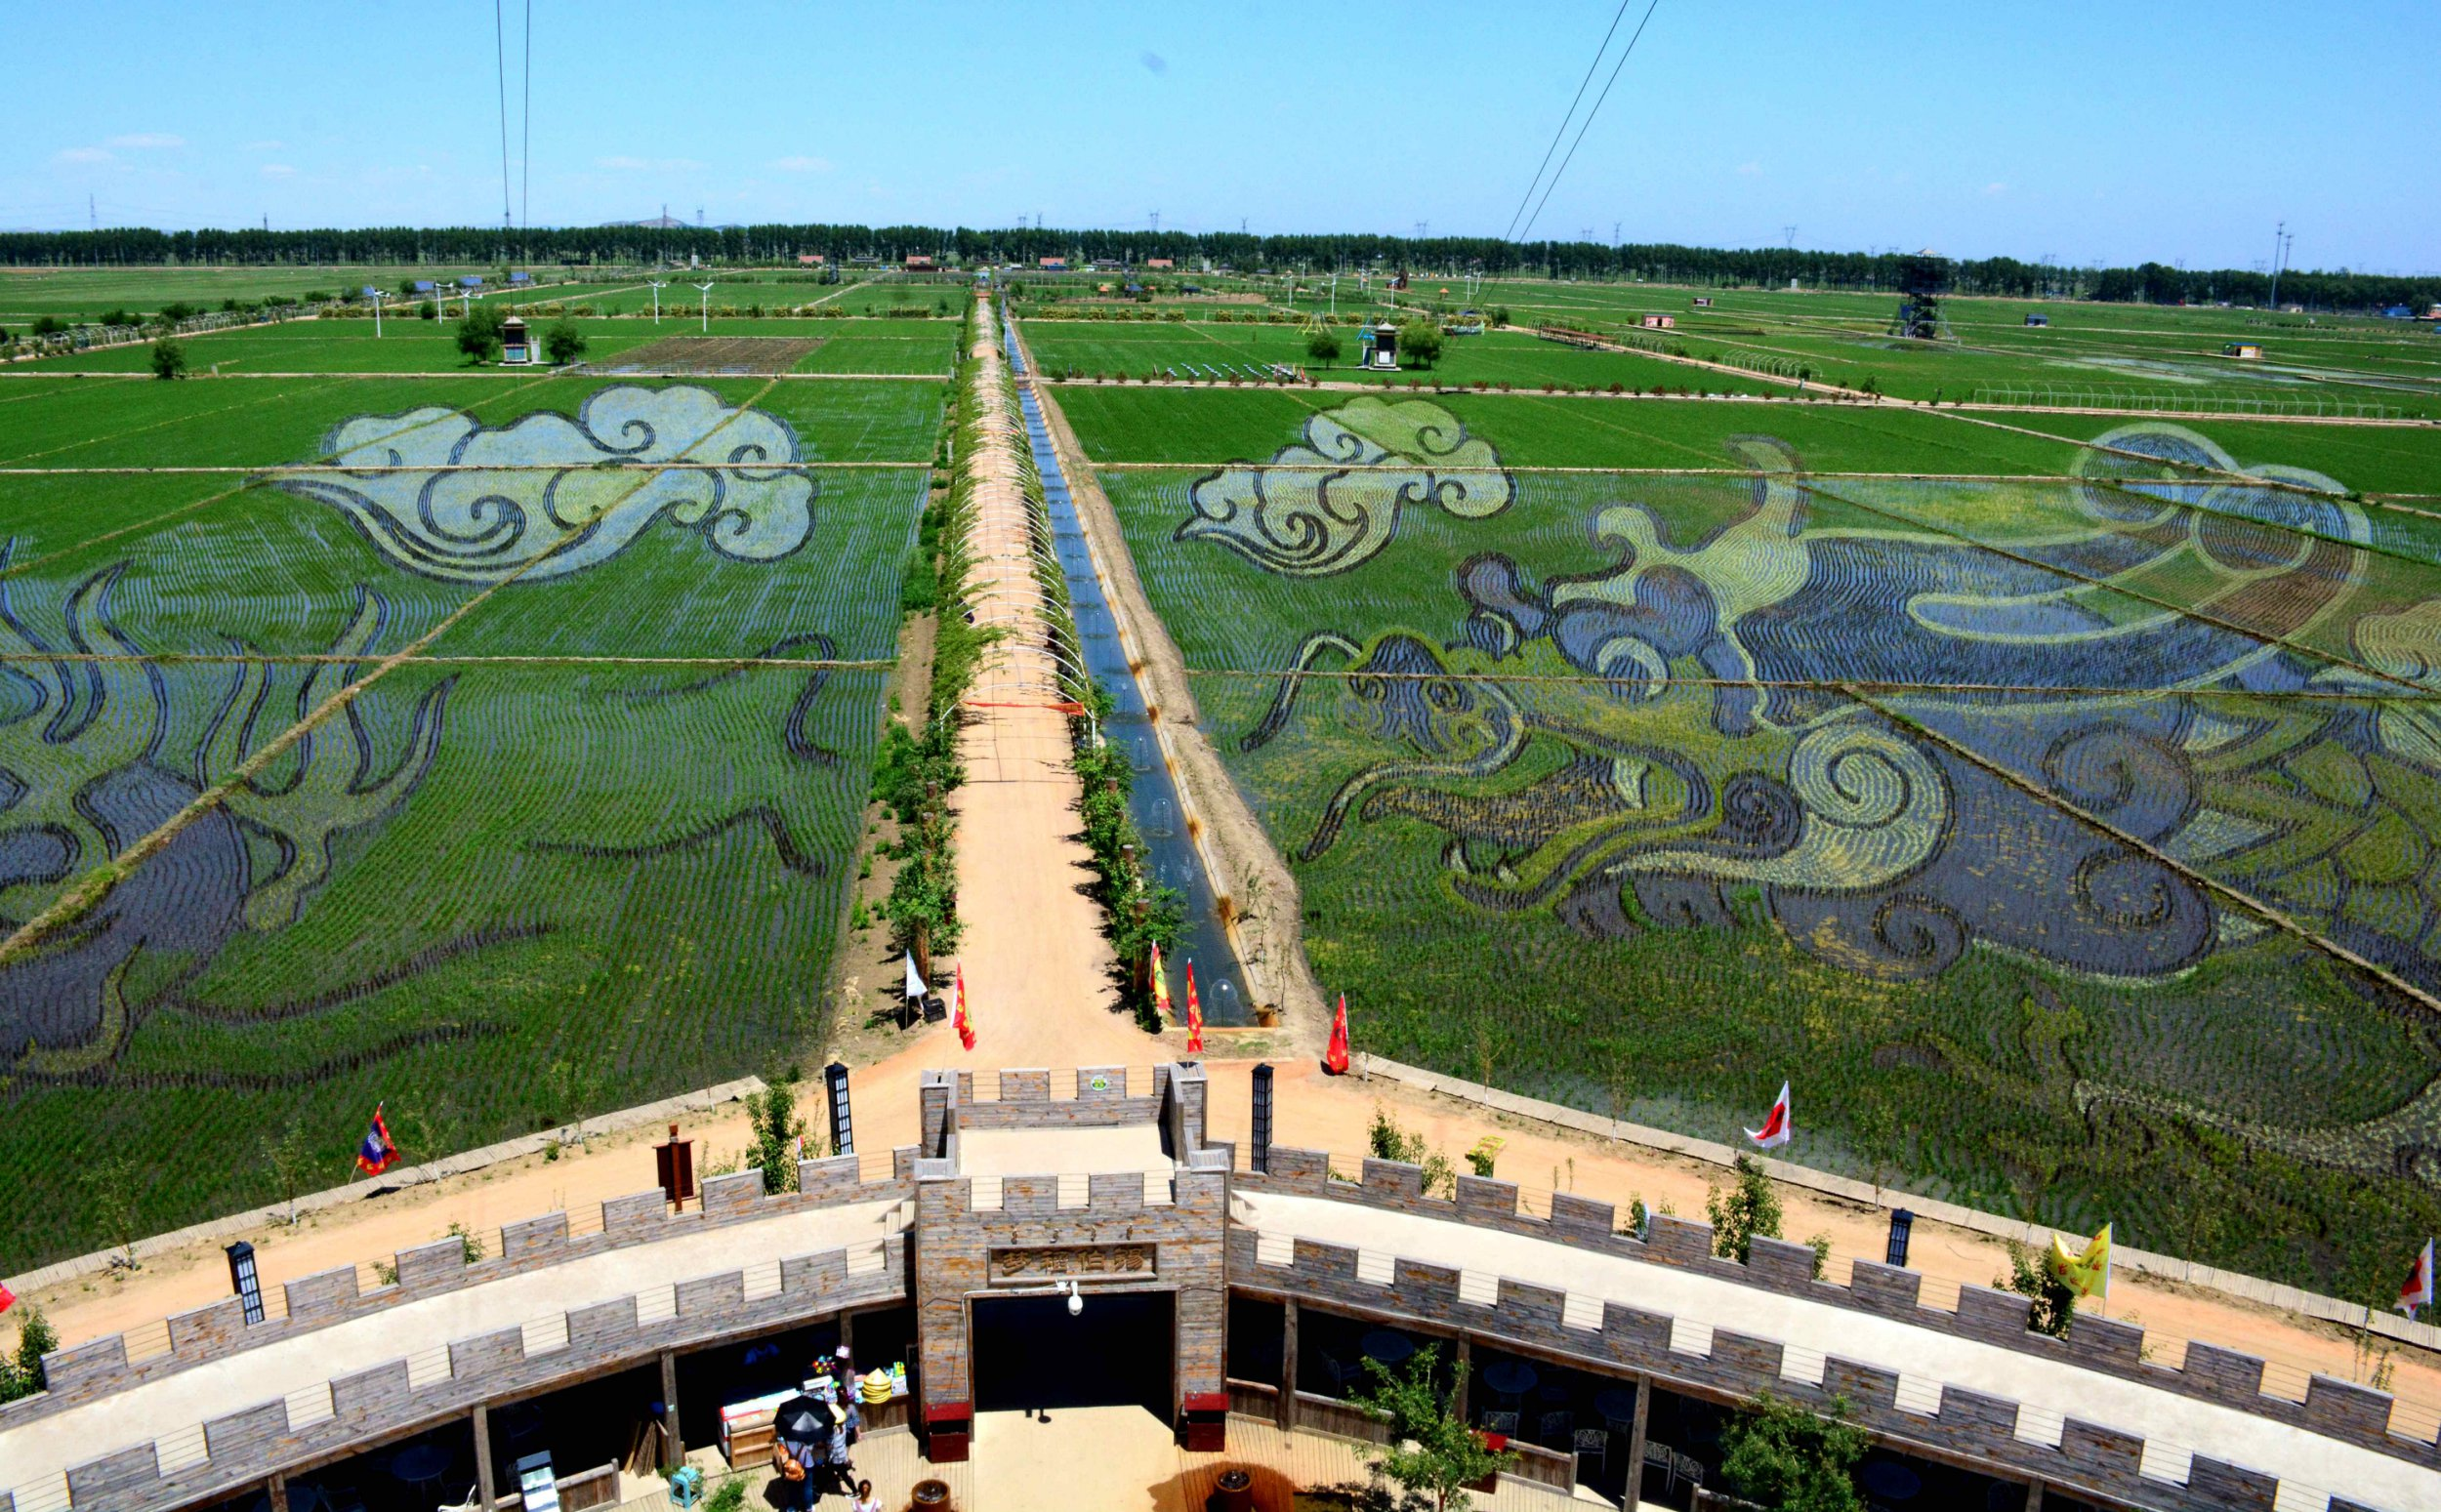 Farmers in China have created incredibly beautiful art in rice paddies